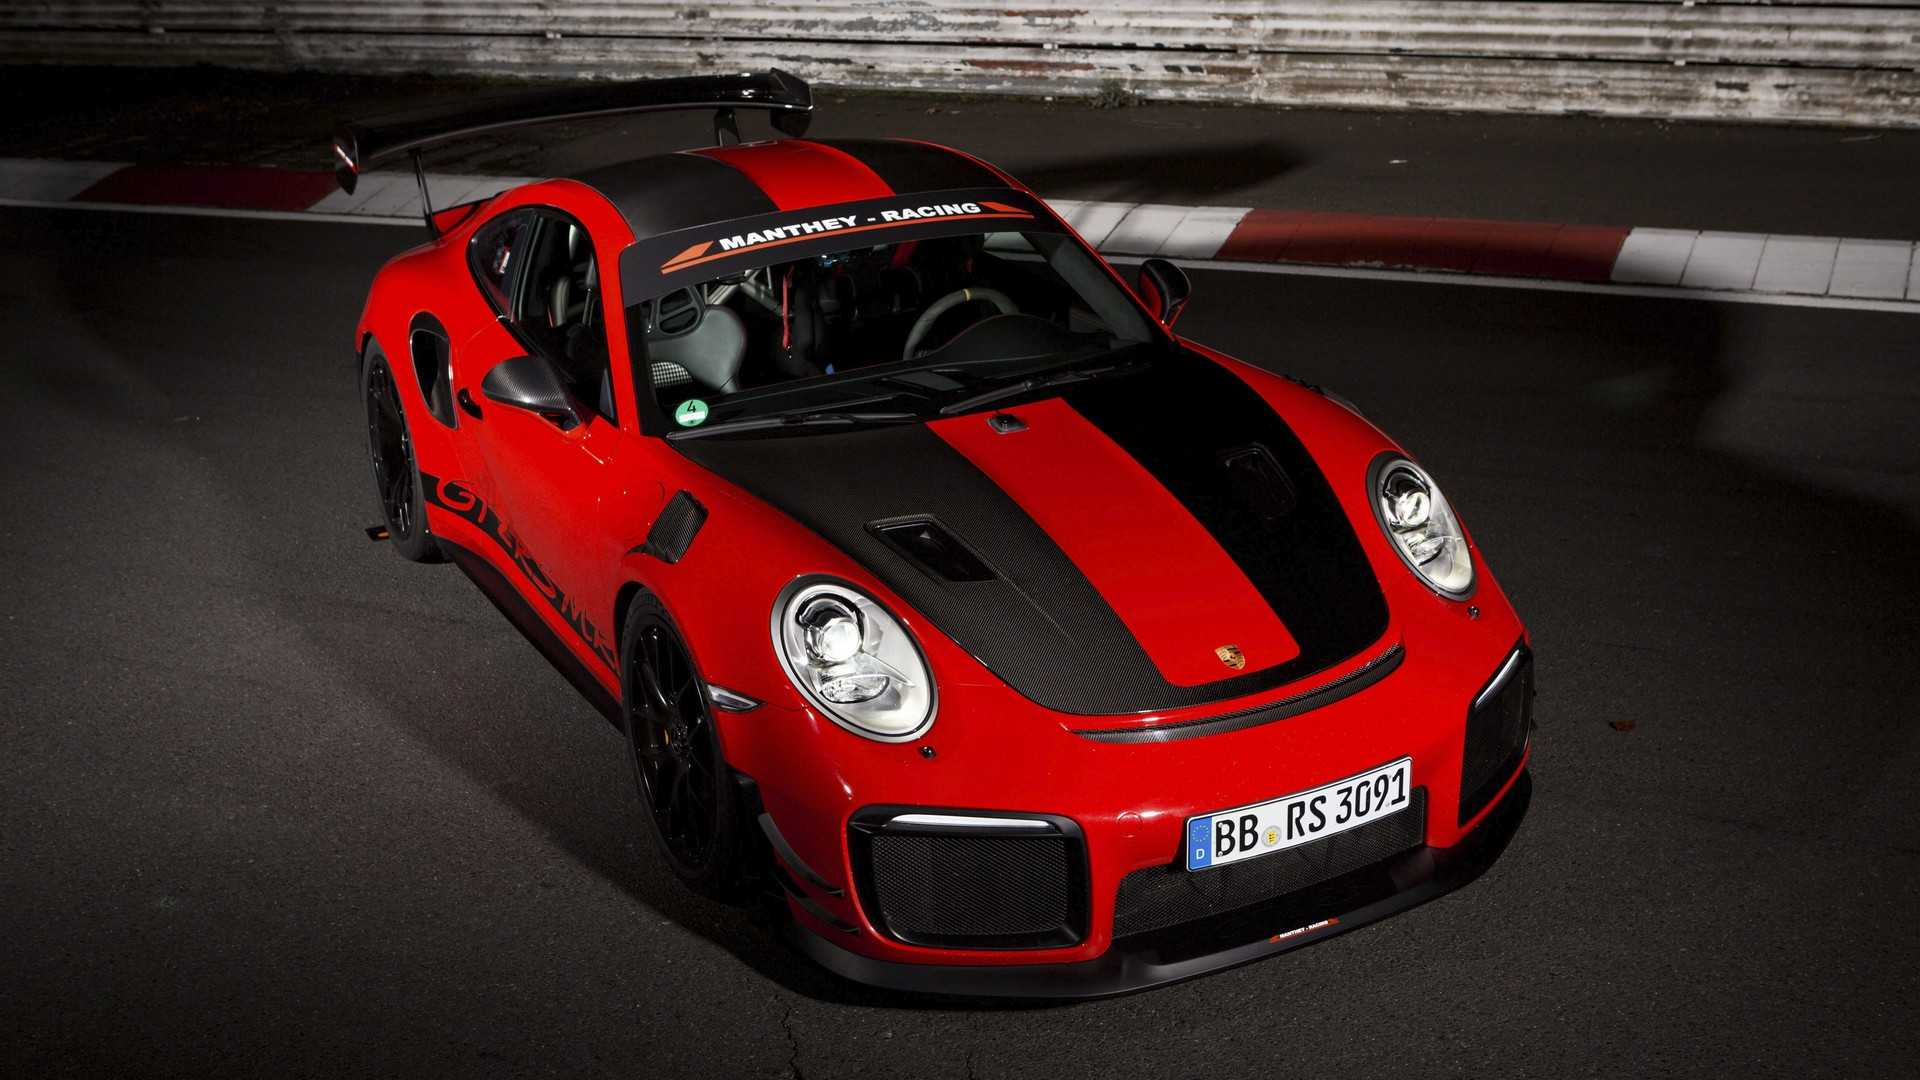 Porsche 911 Gt2 Rs Mr What You Get And How Much It Costs